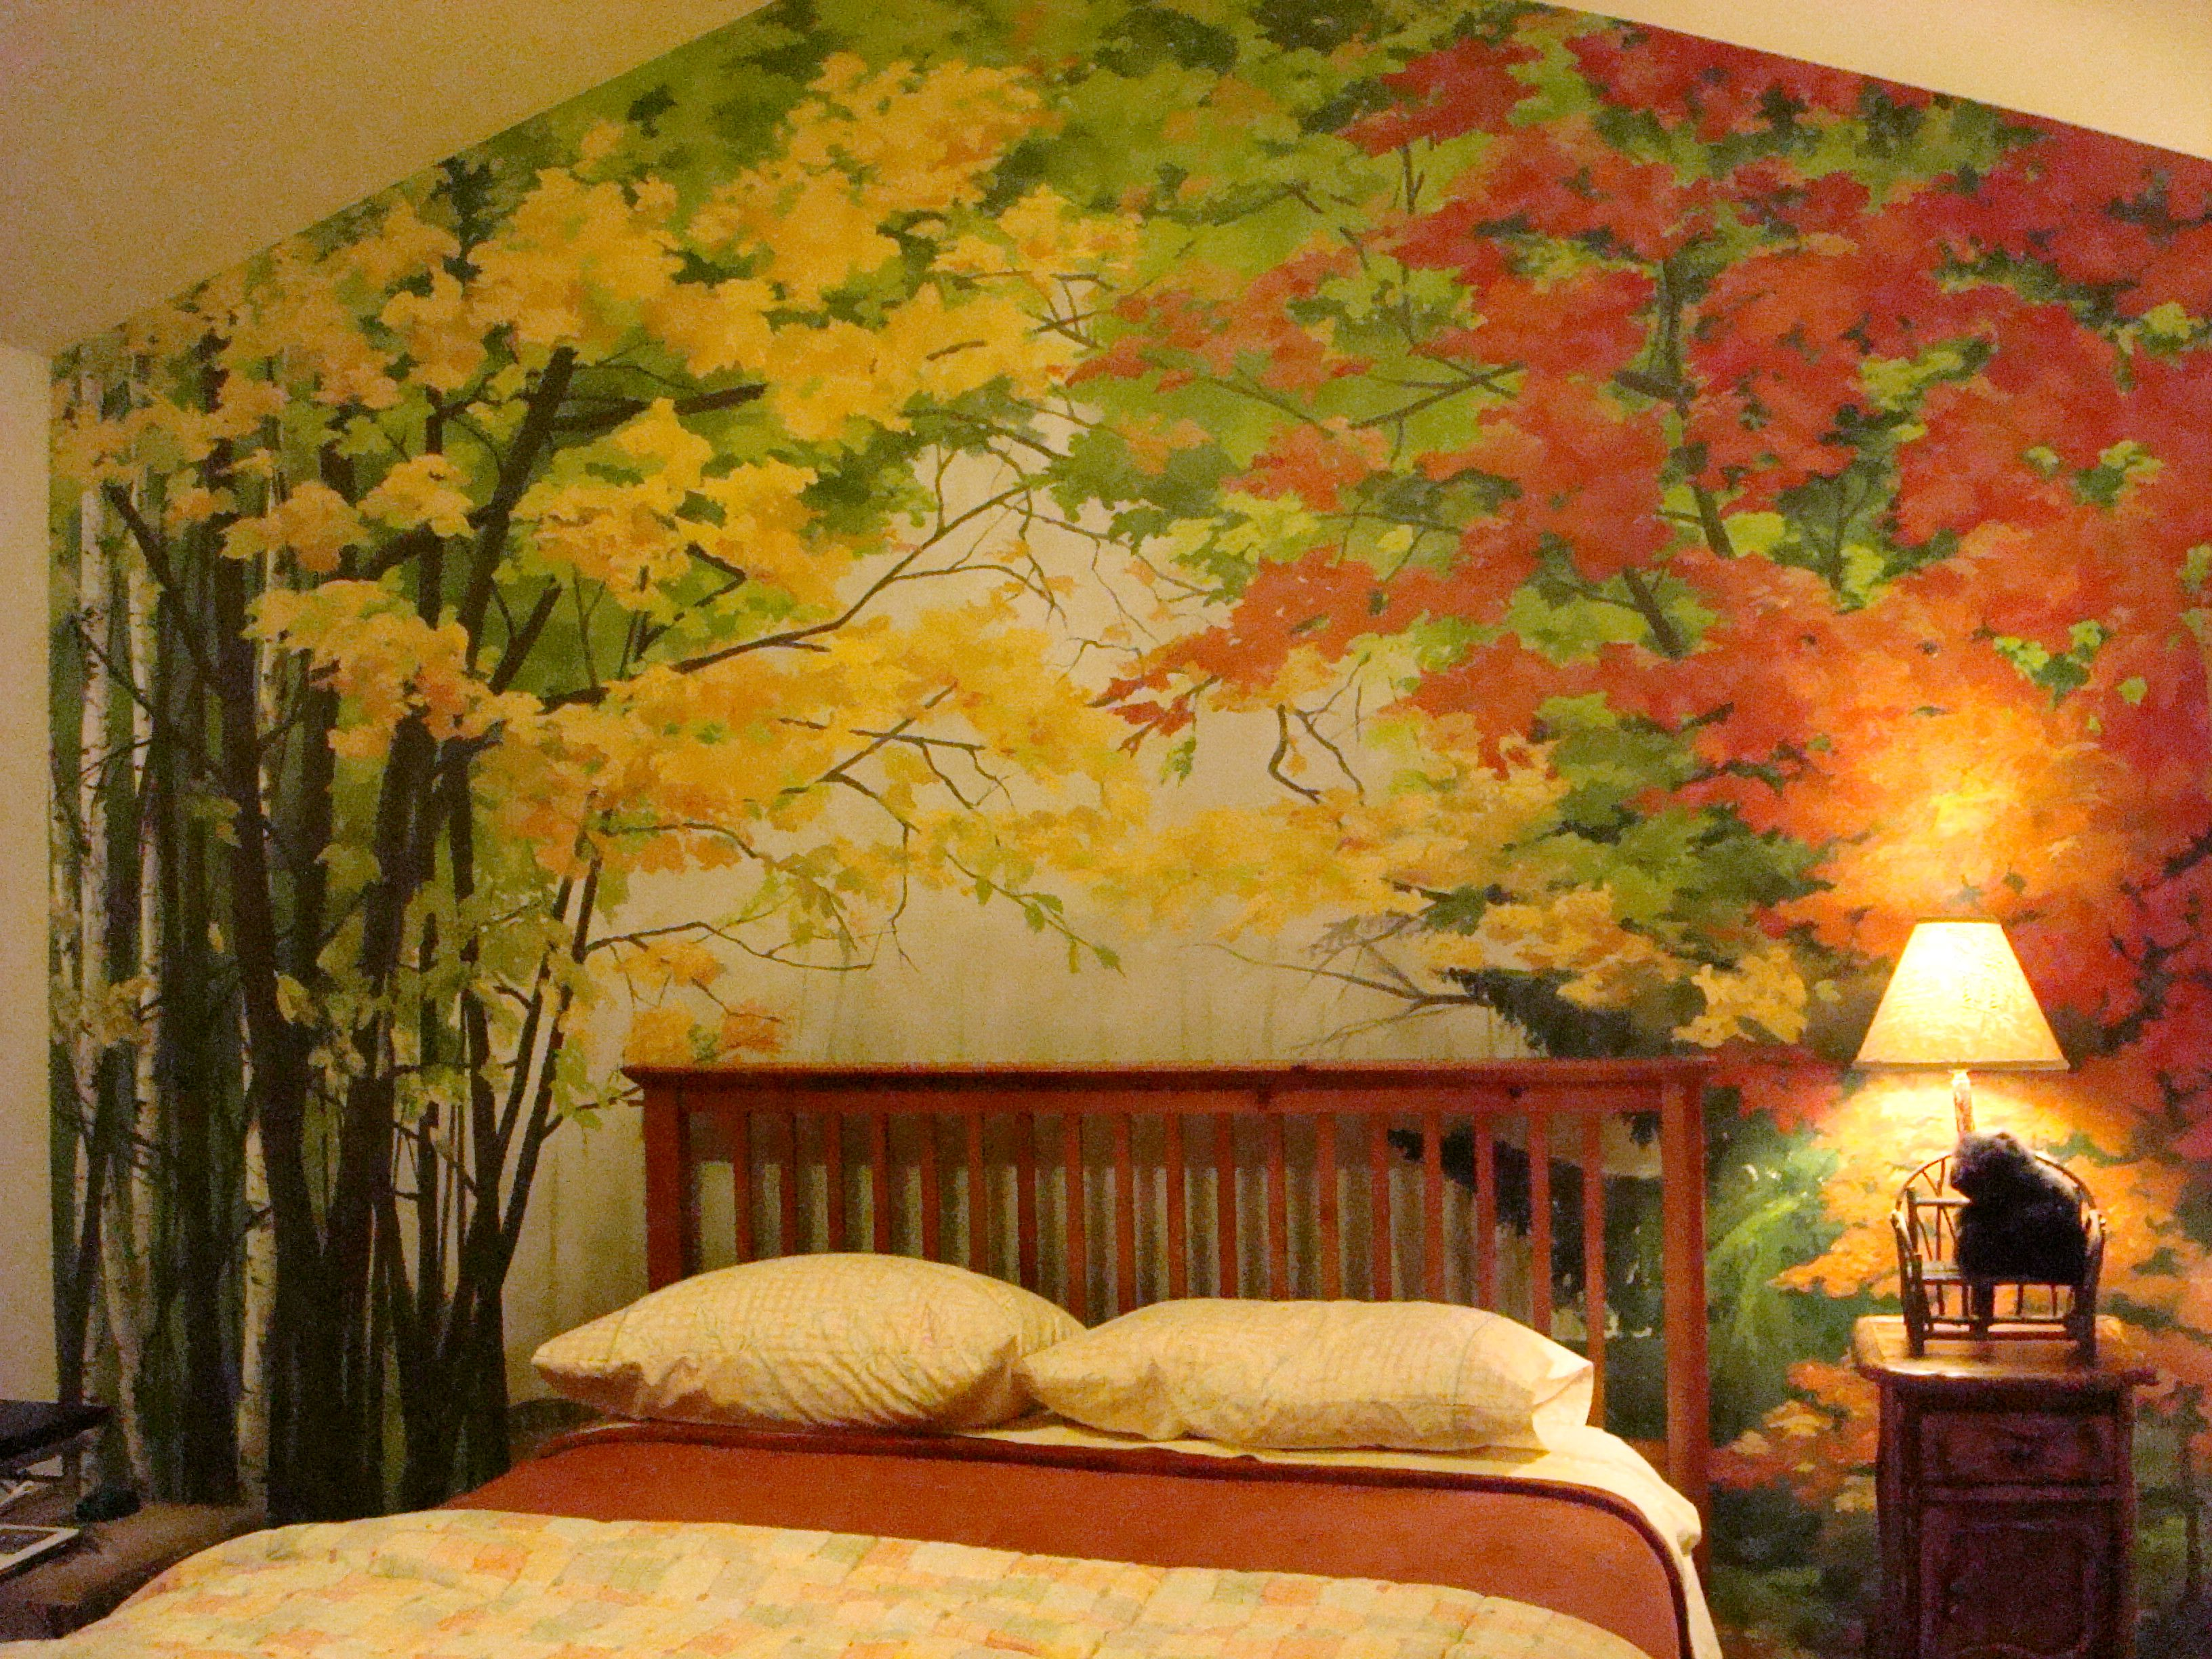 Bedroom Mural By Creative Wallternatives